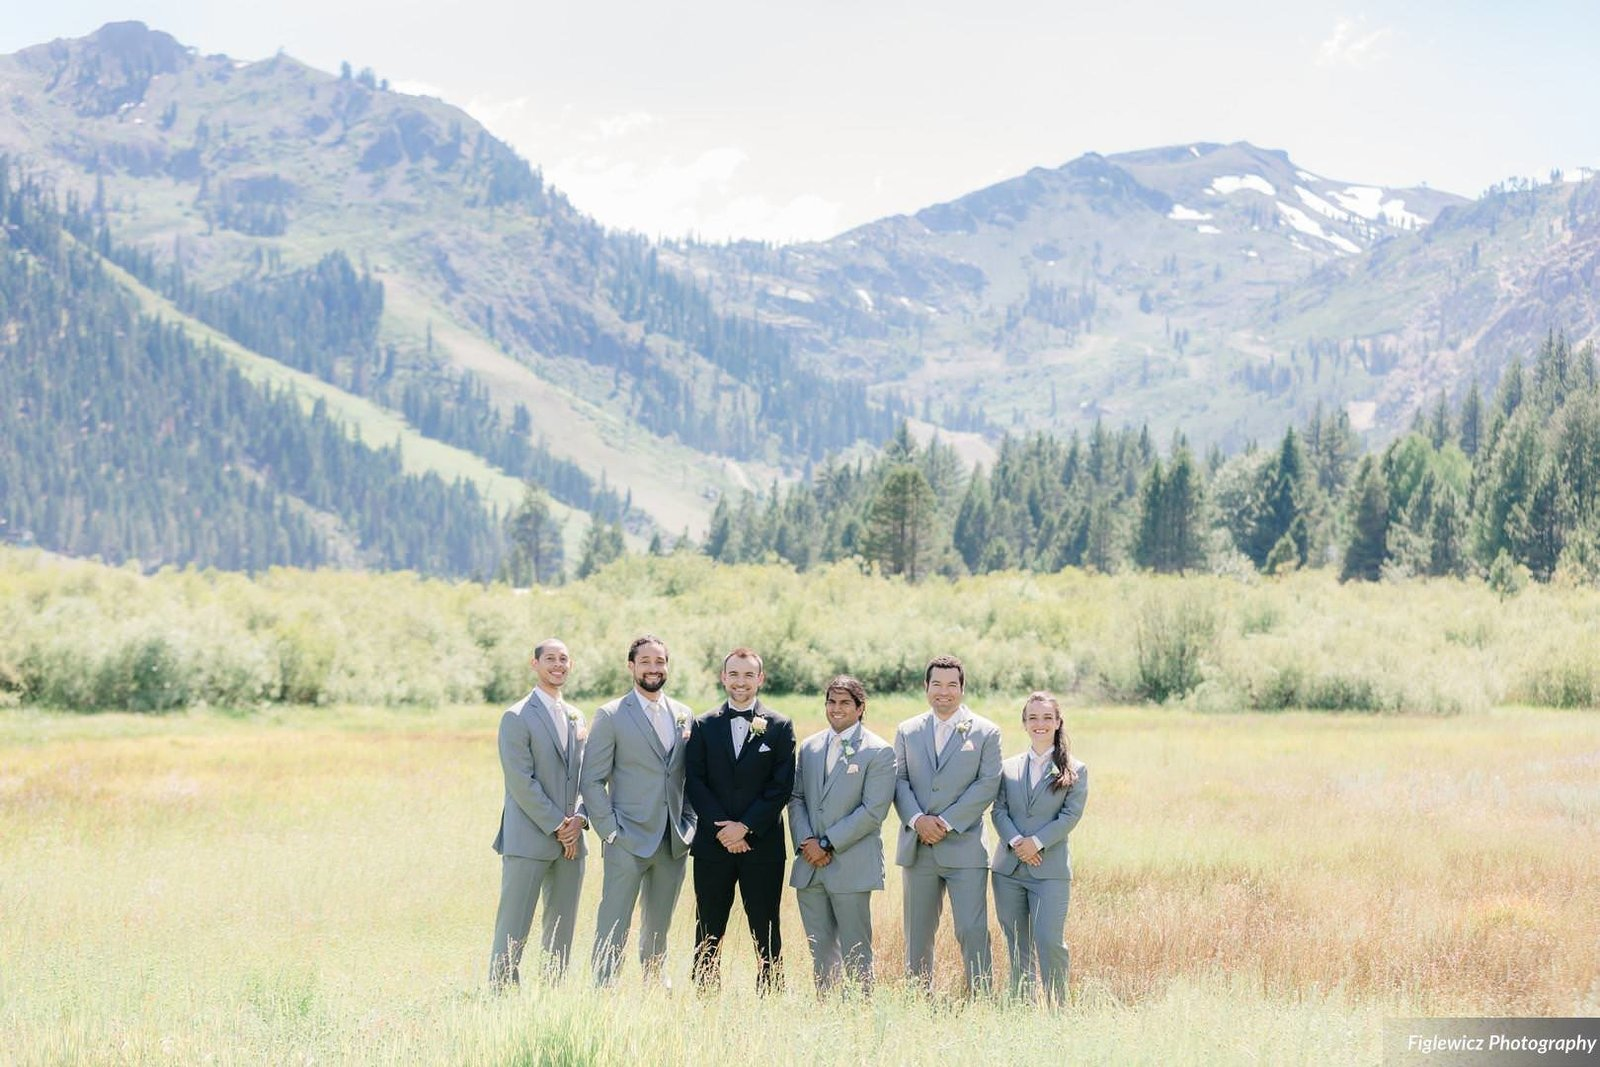 Garden_Tinsley_FiglewiczPhotography_LakeTahoeWeddingSquawValleyCreekTaylorBrendan00035_big